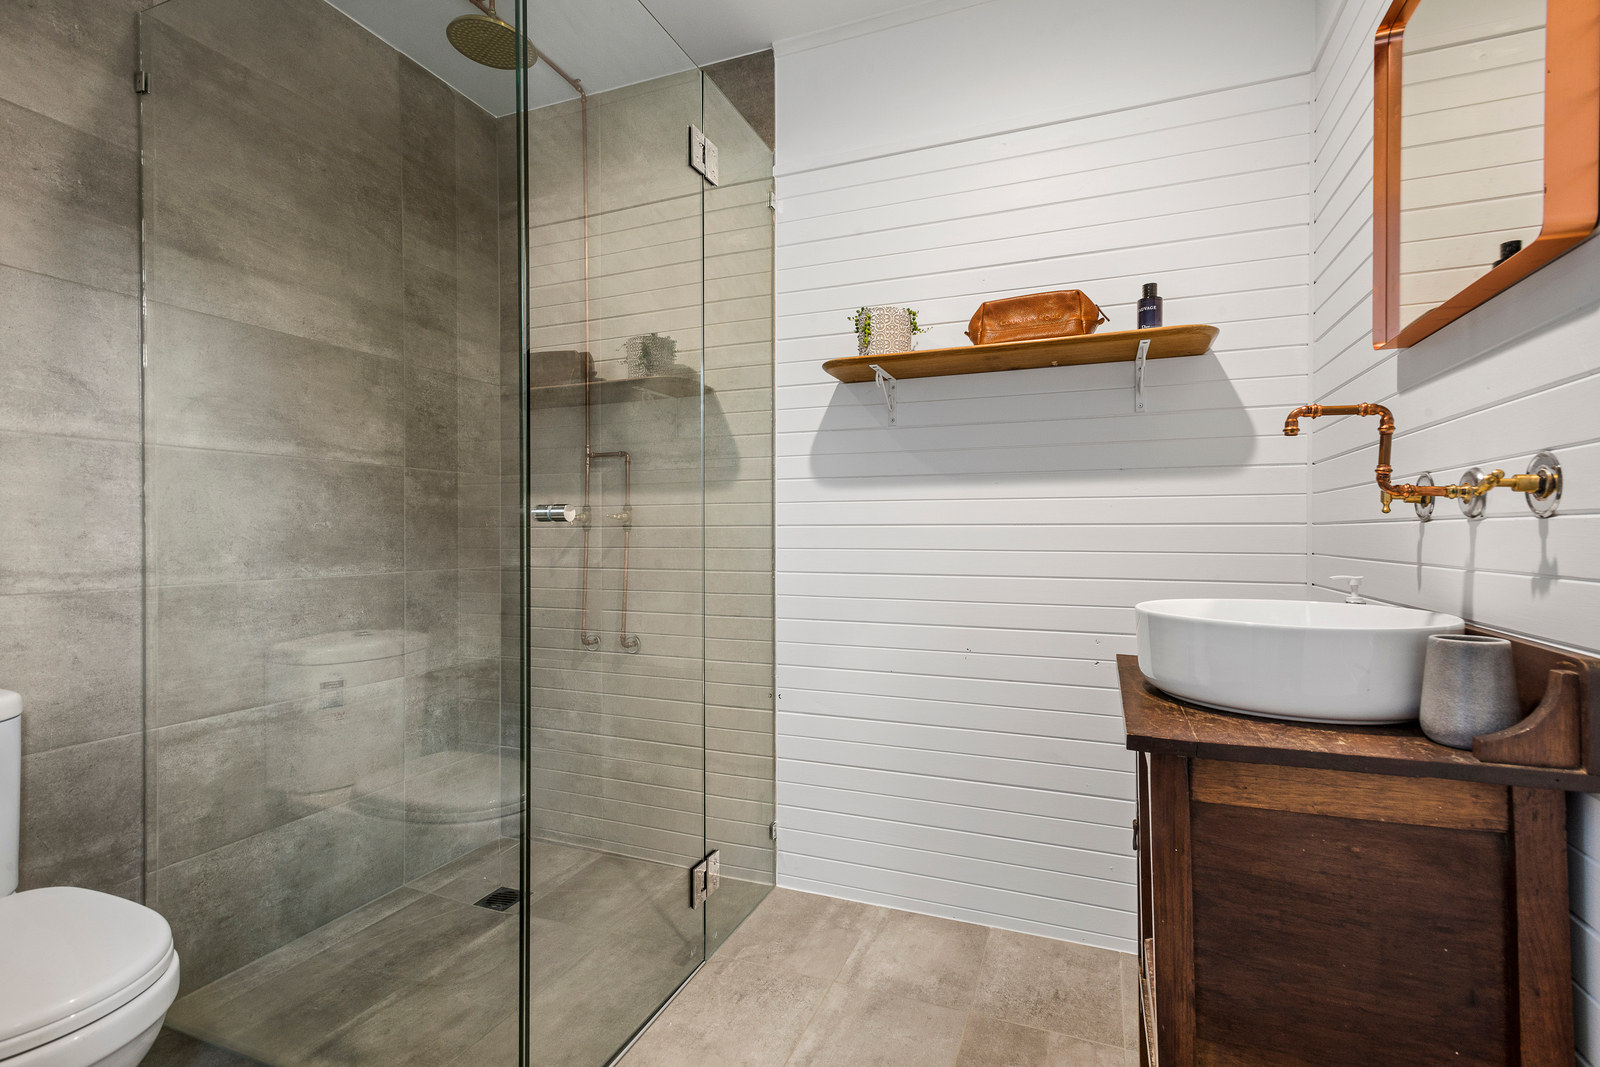 317 Jetty Road, Rosebud 3939 - Image 6